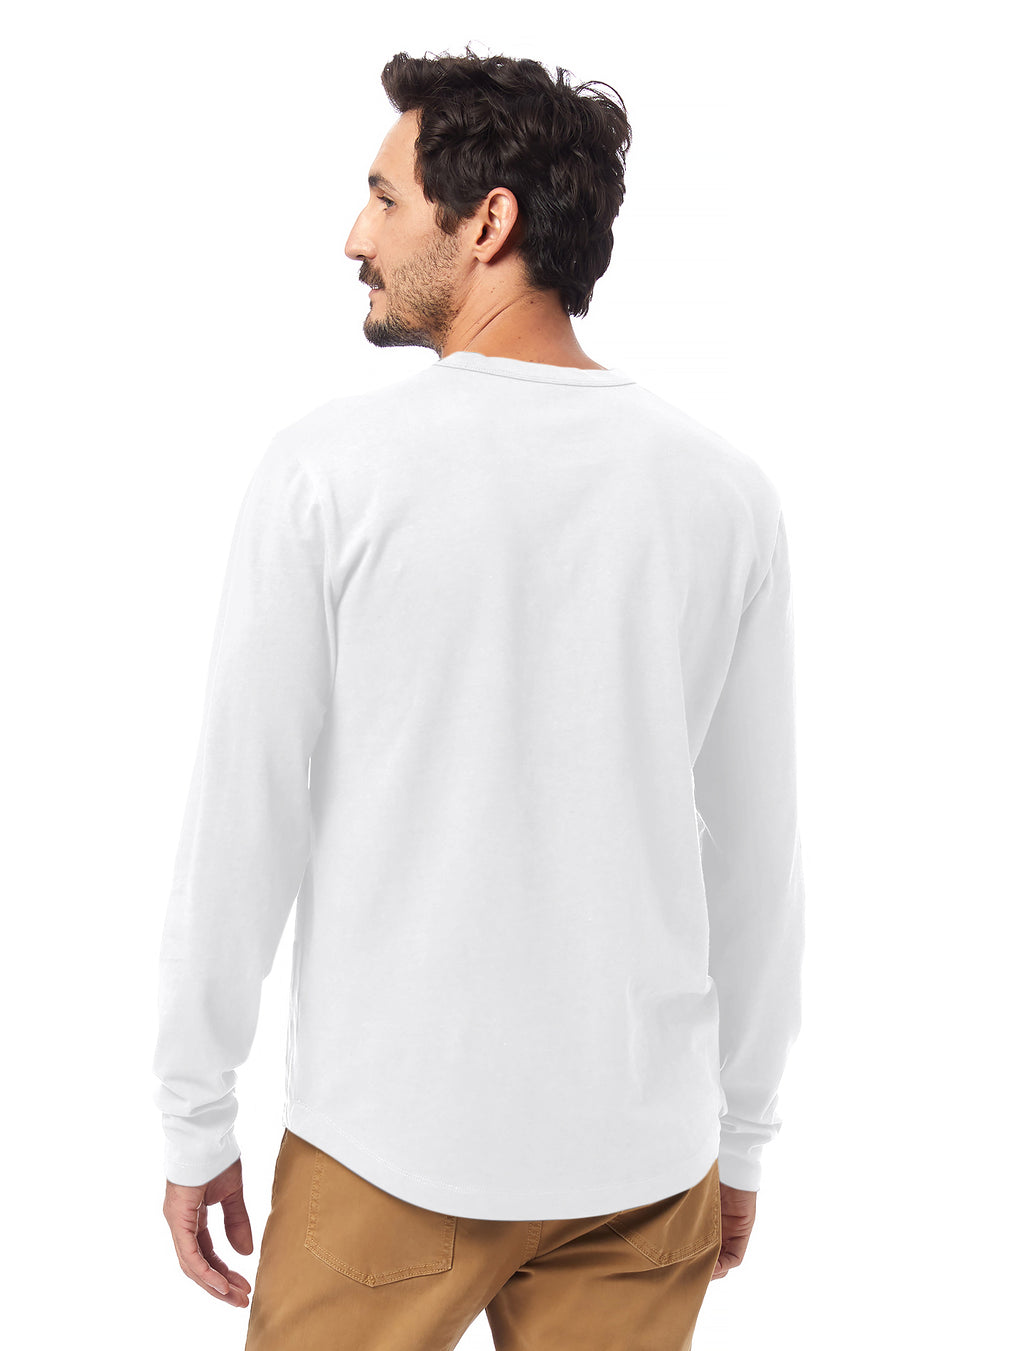 Alternative Apparel Hemp Blend Long Sleeve Tee-White